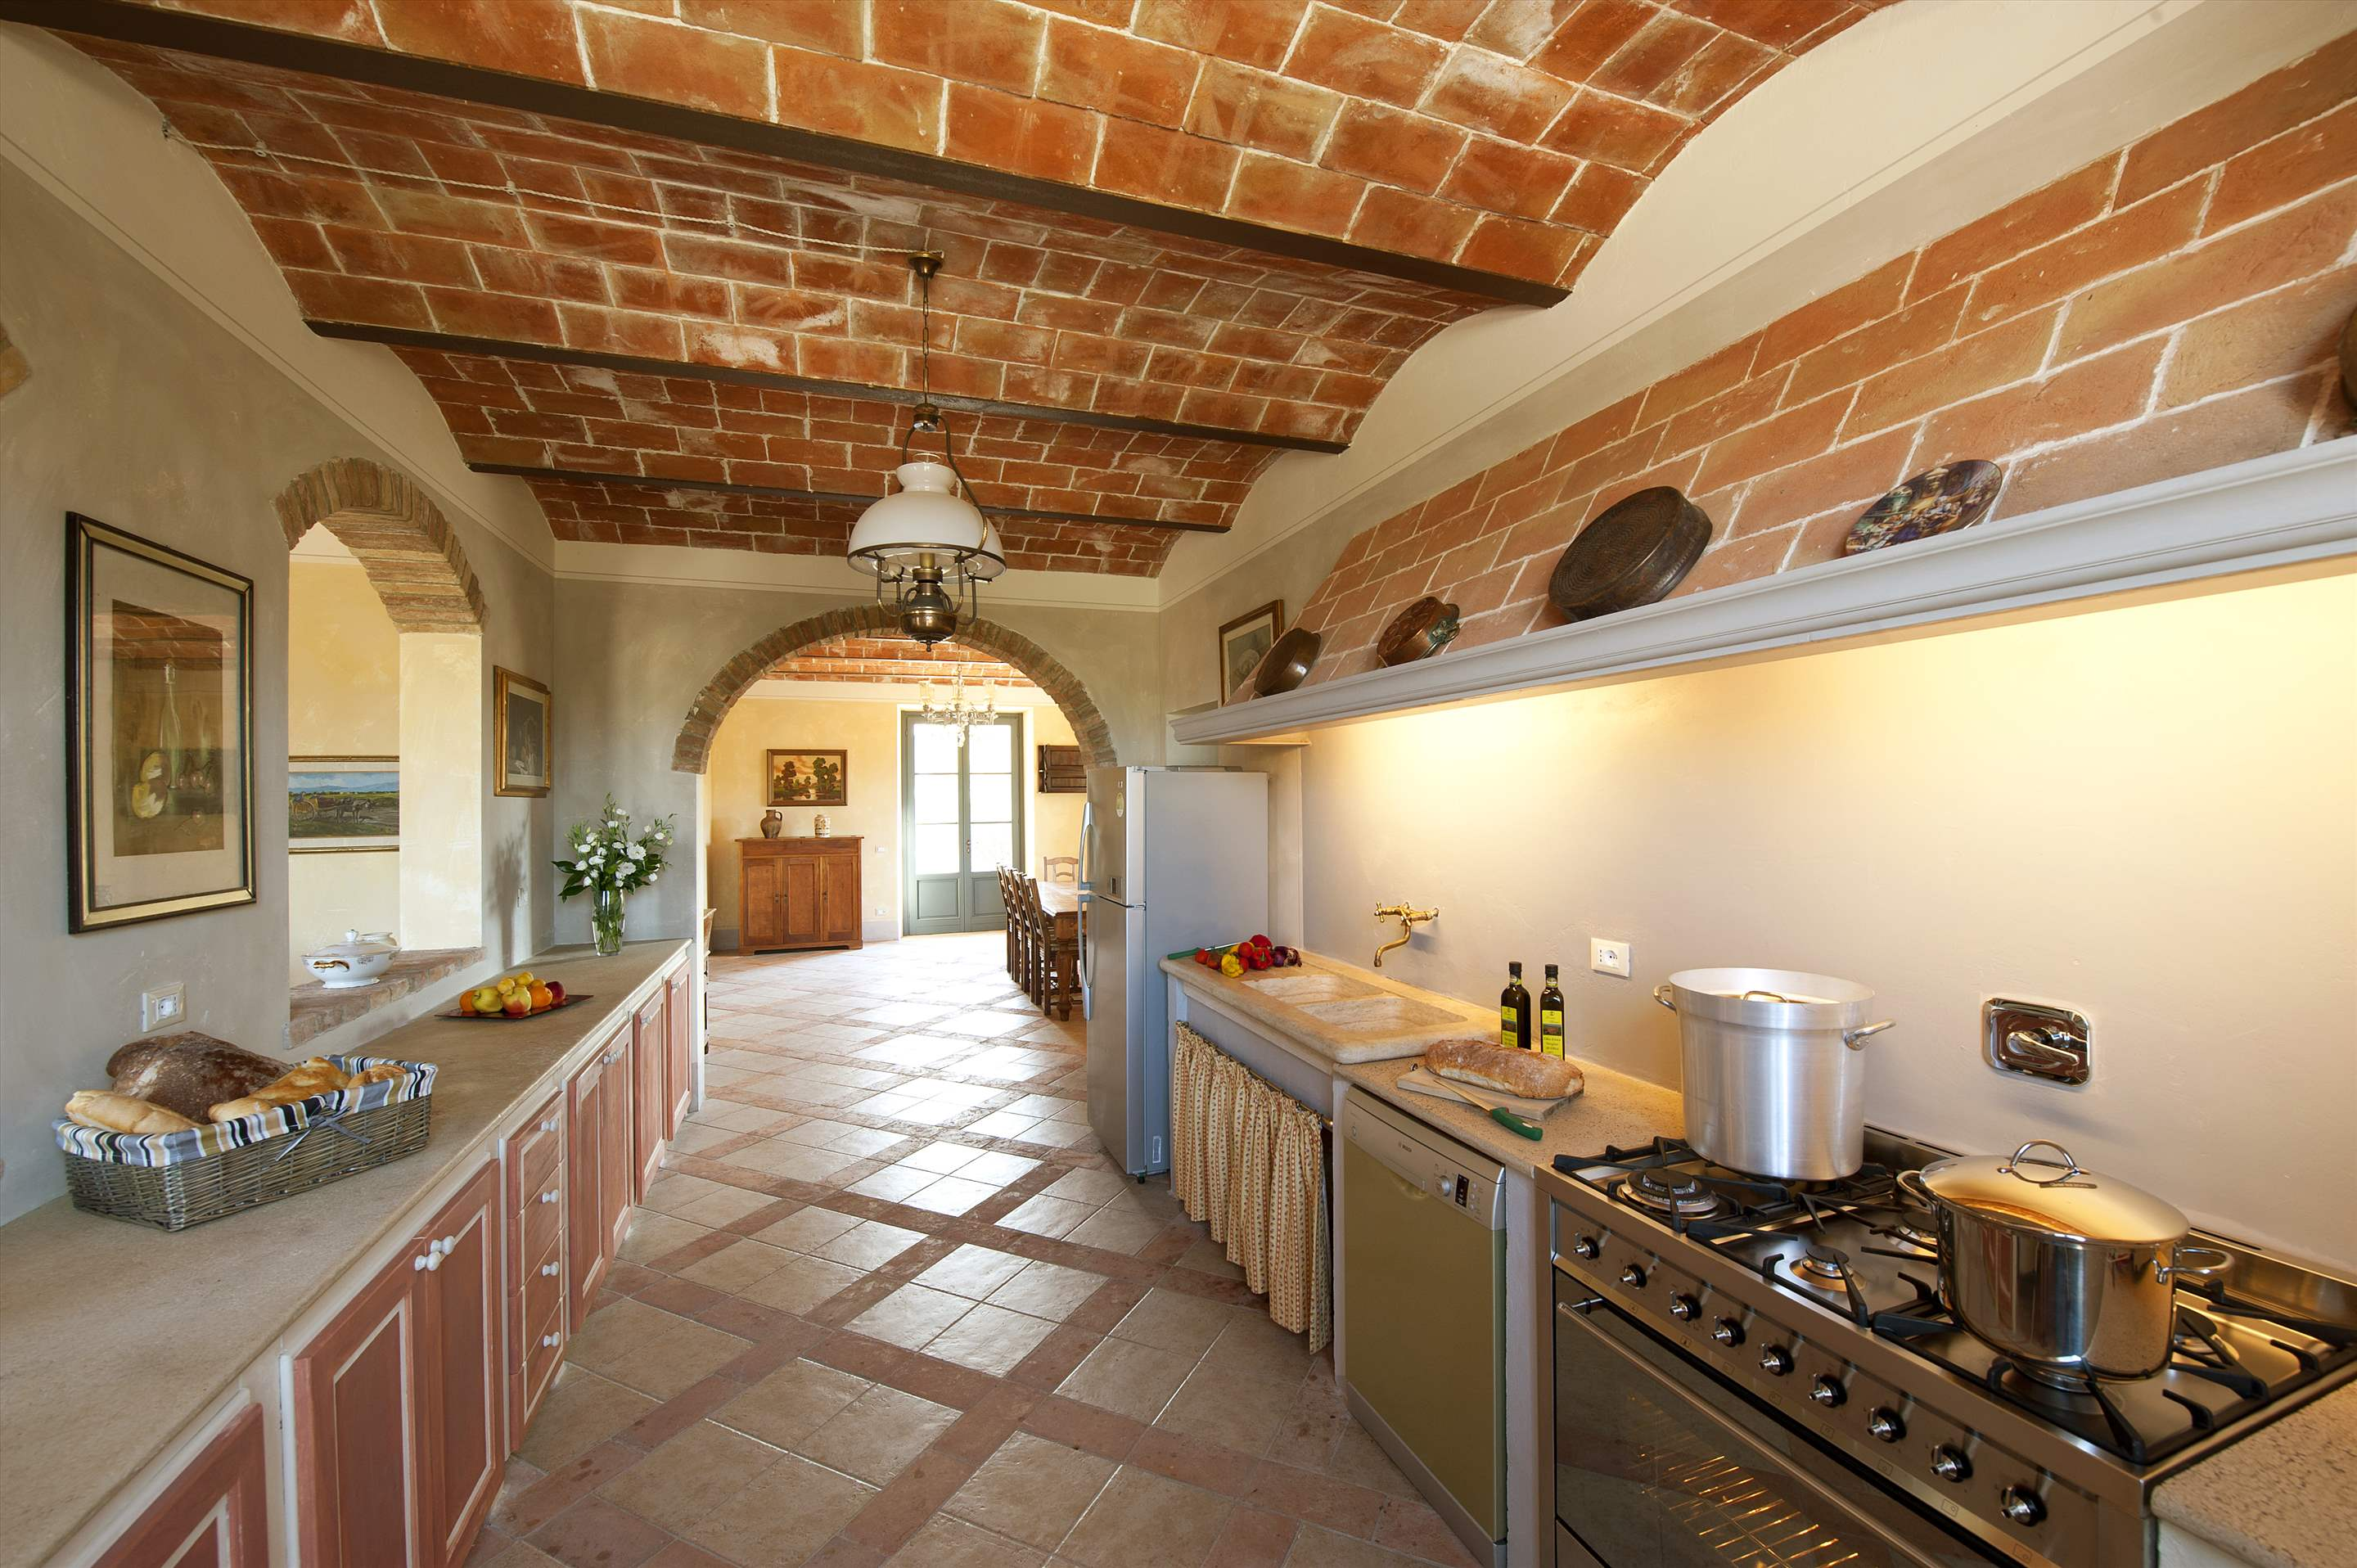 Podere Di Collina, First Floor, 4 bedroom villa in Tuscany Coast, Tuscany Photo #8